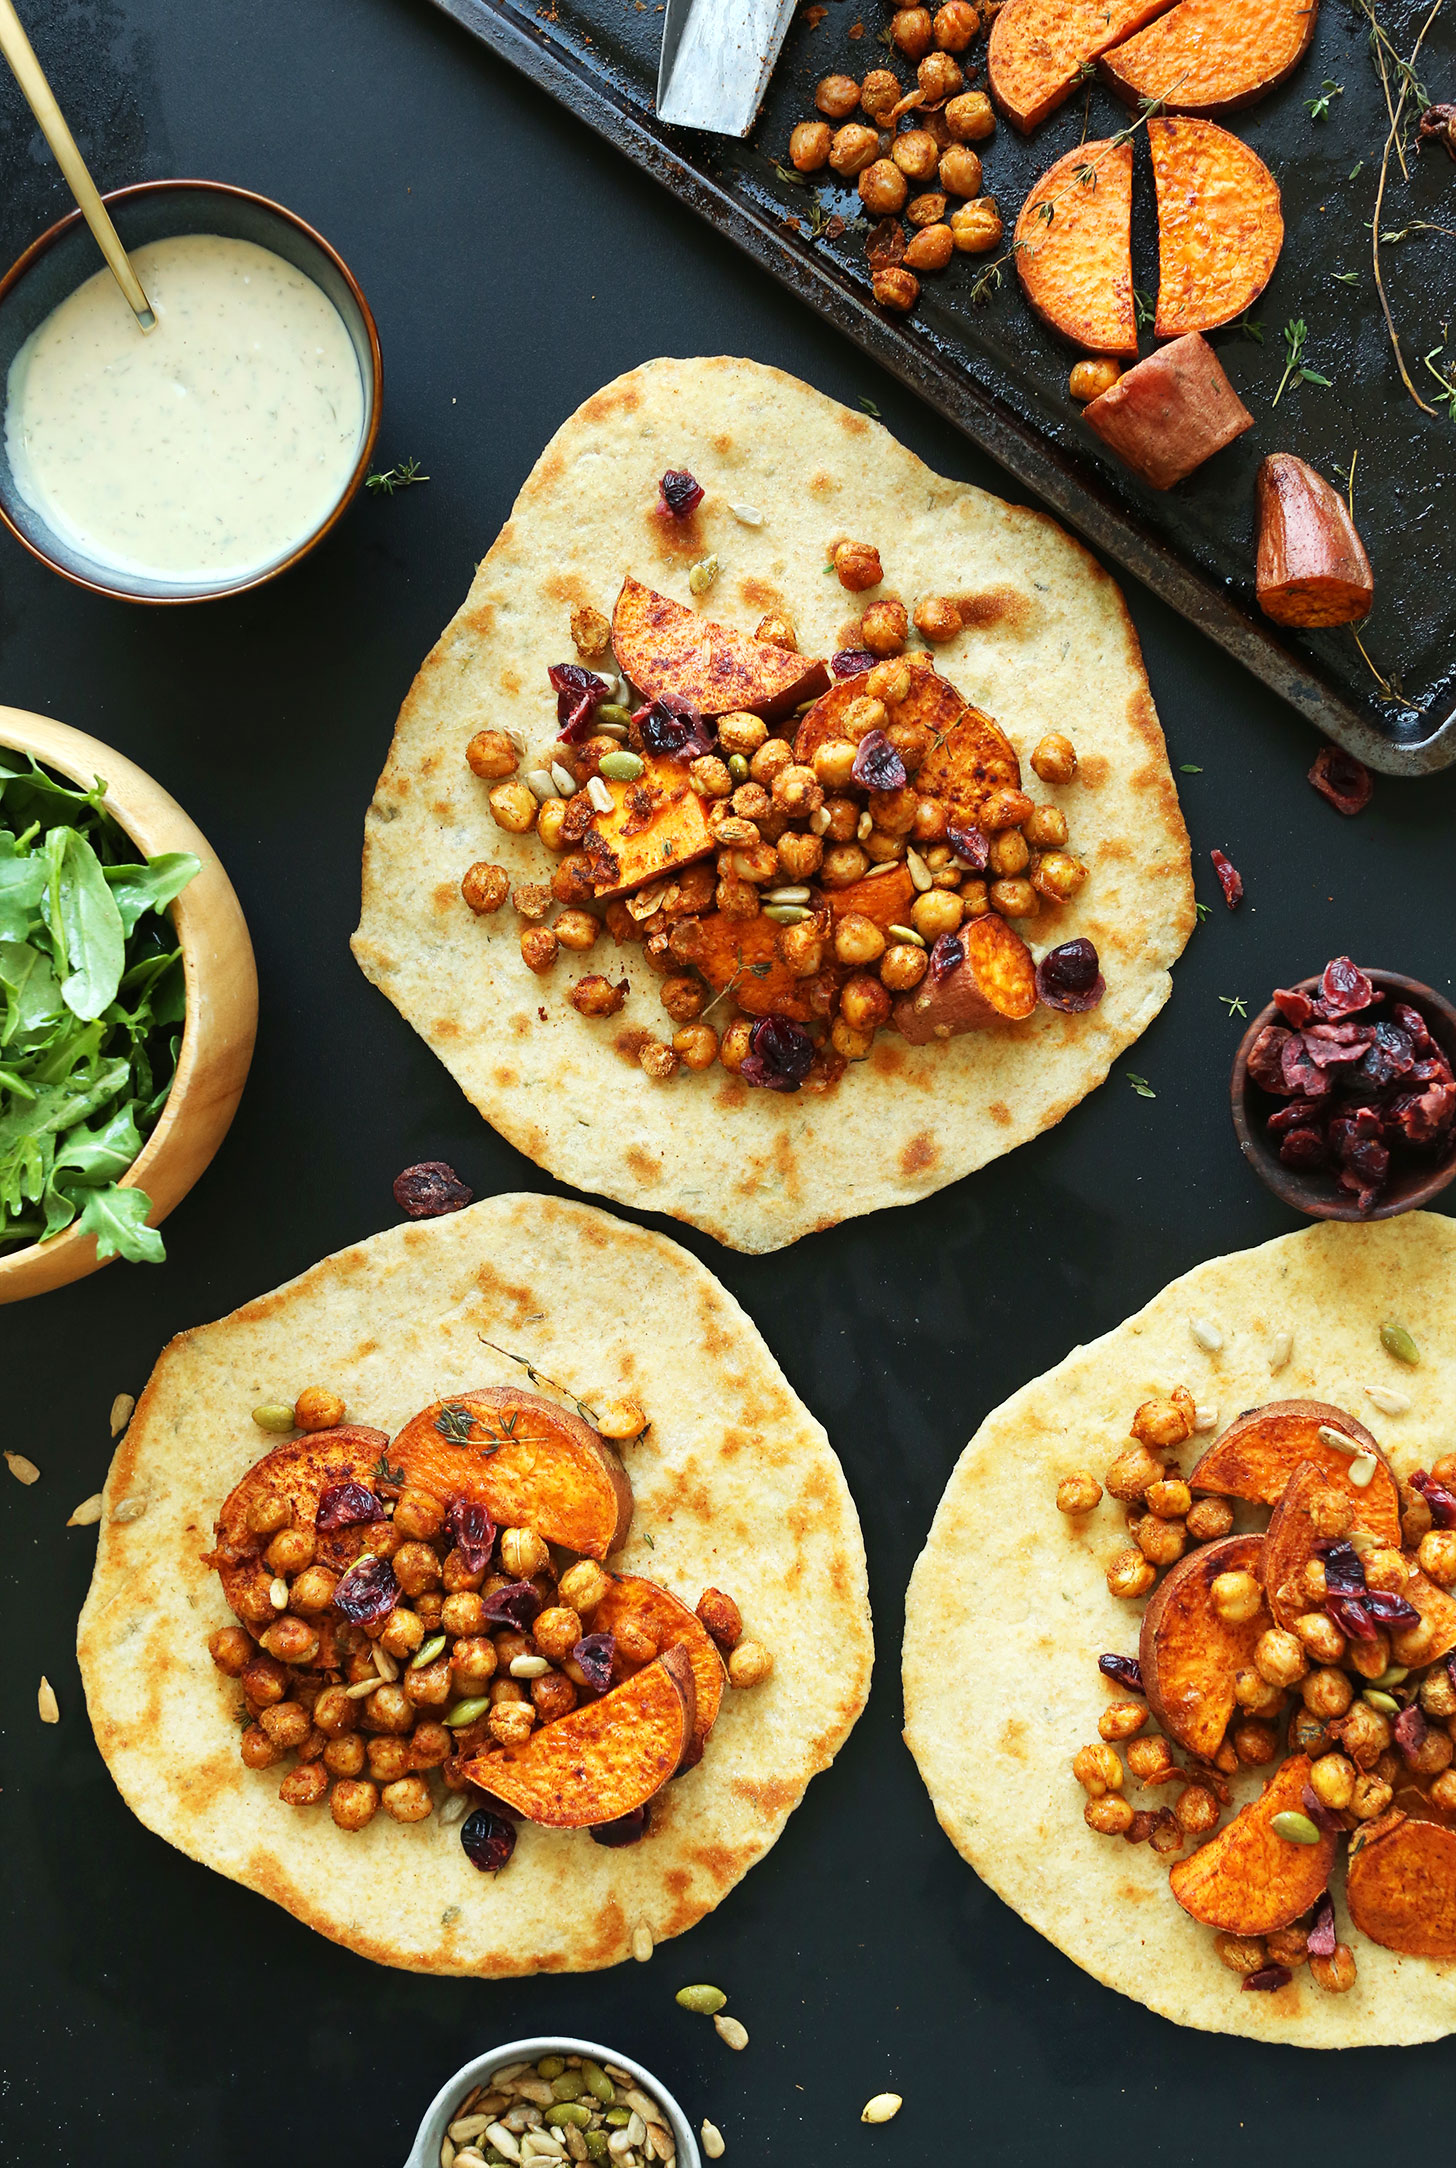 Vegan thanksgiving wraps minimalist baker recipes vegan thanksgiving wraps made with chickpeas sweet potatoes cranberries and fresh greens forumfinder Image collections